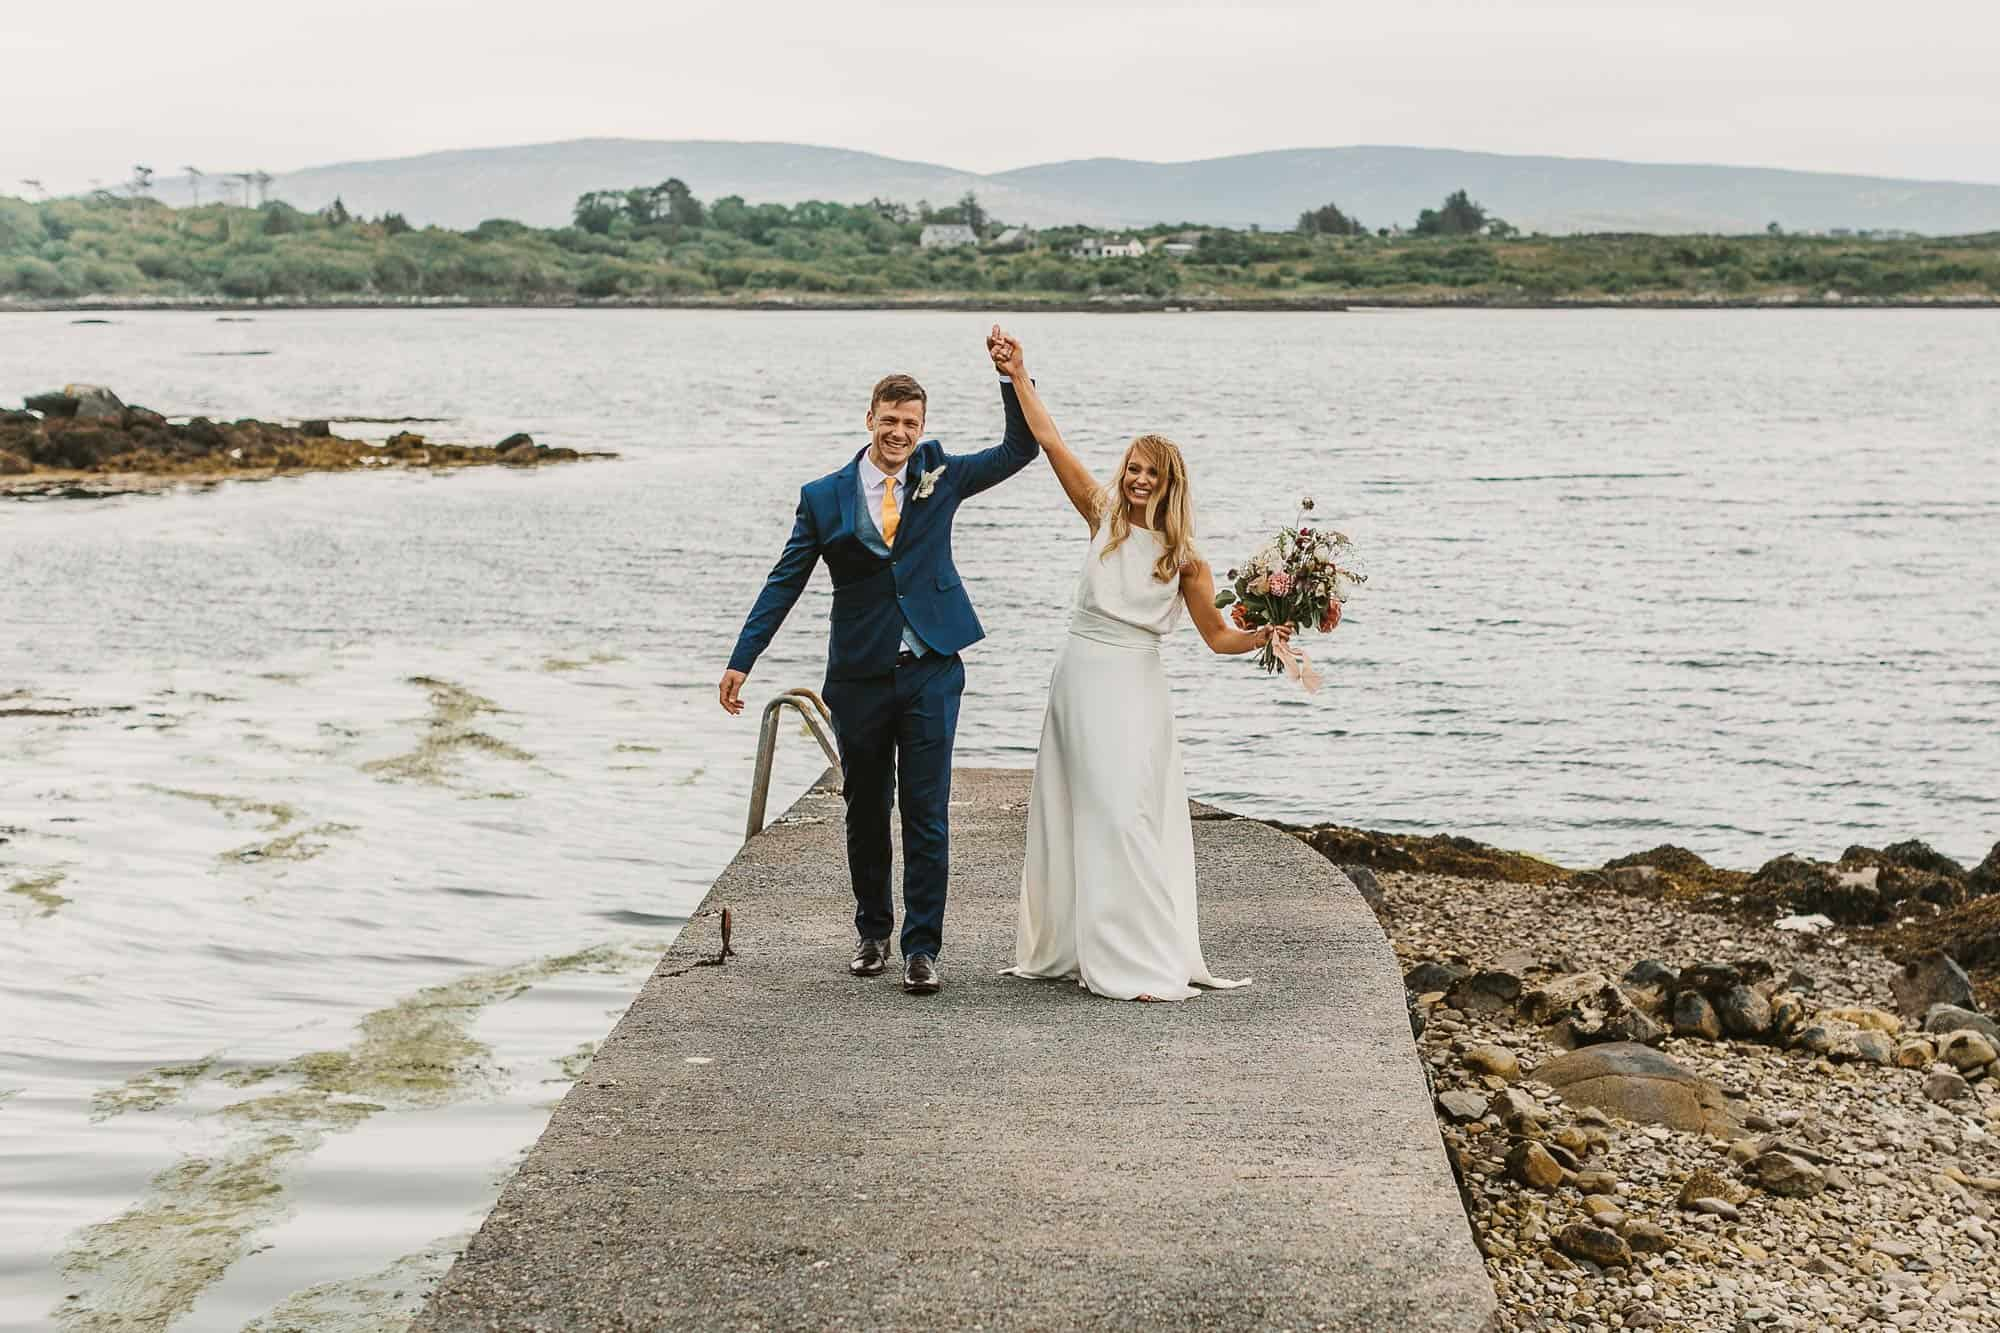 Elopement Ireland Connemara Ireland Fun, couple are cheering with arms up on the pier